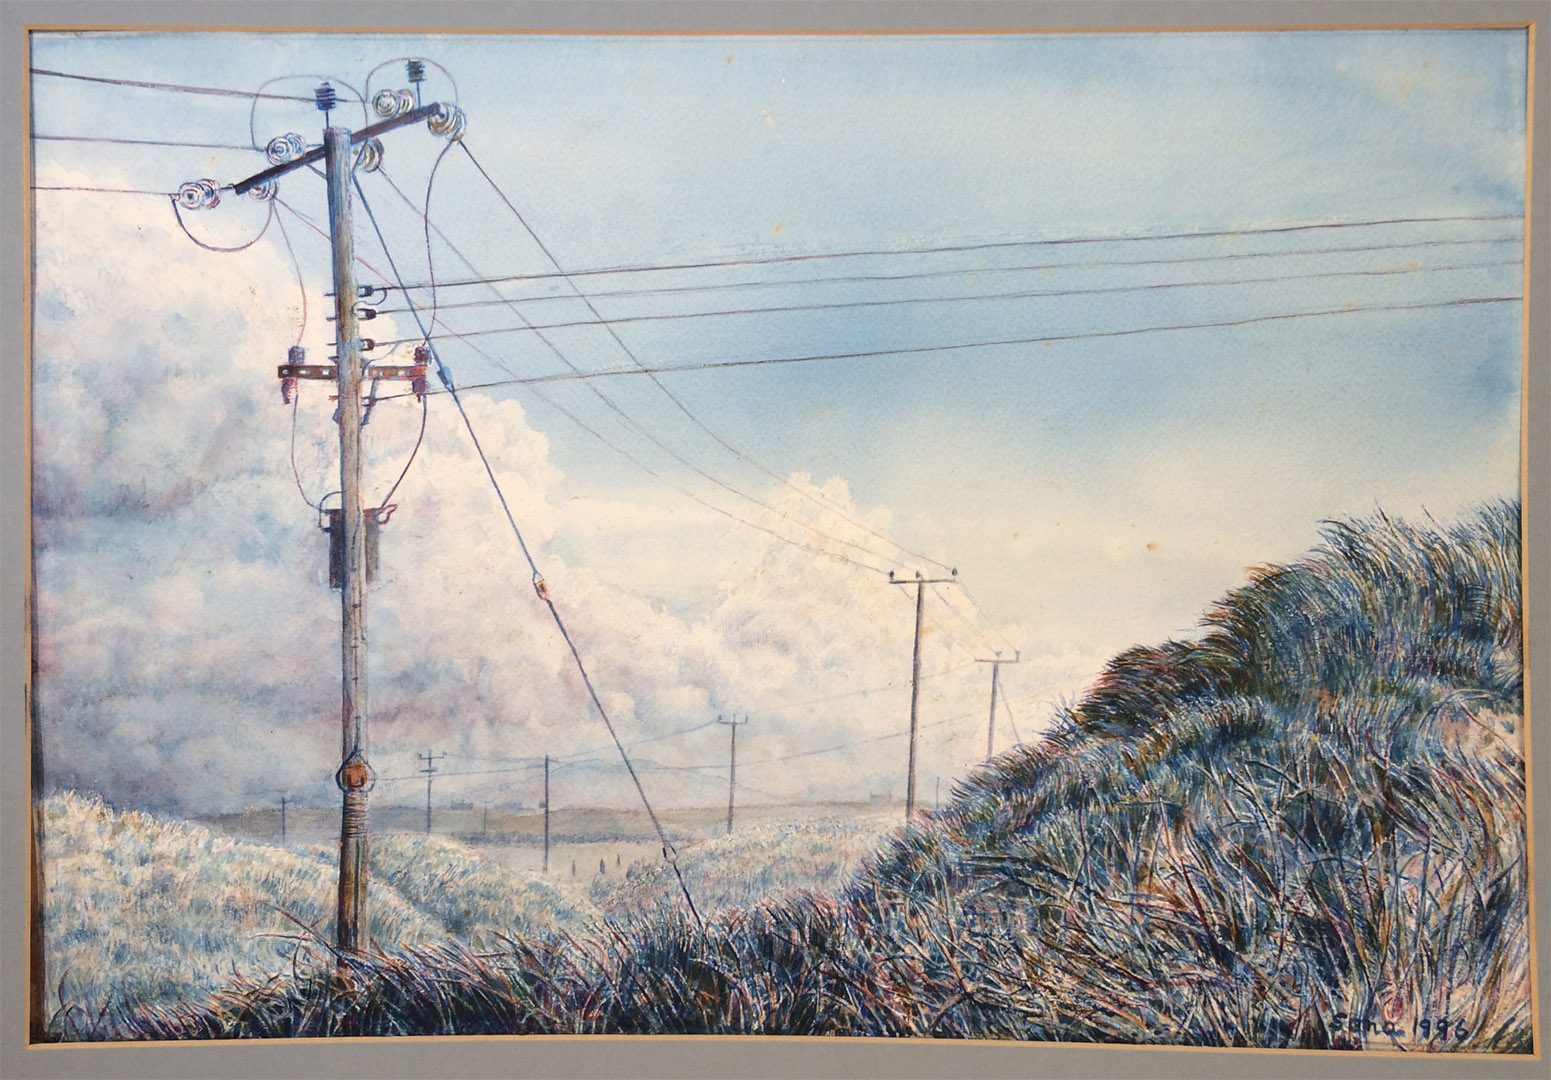 Painting by Sana showing power poles in country scene